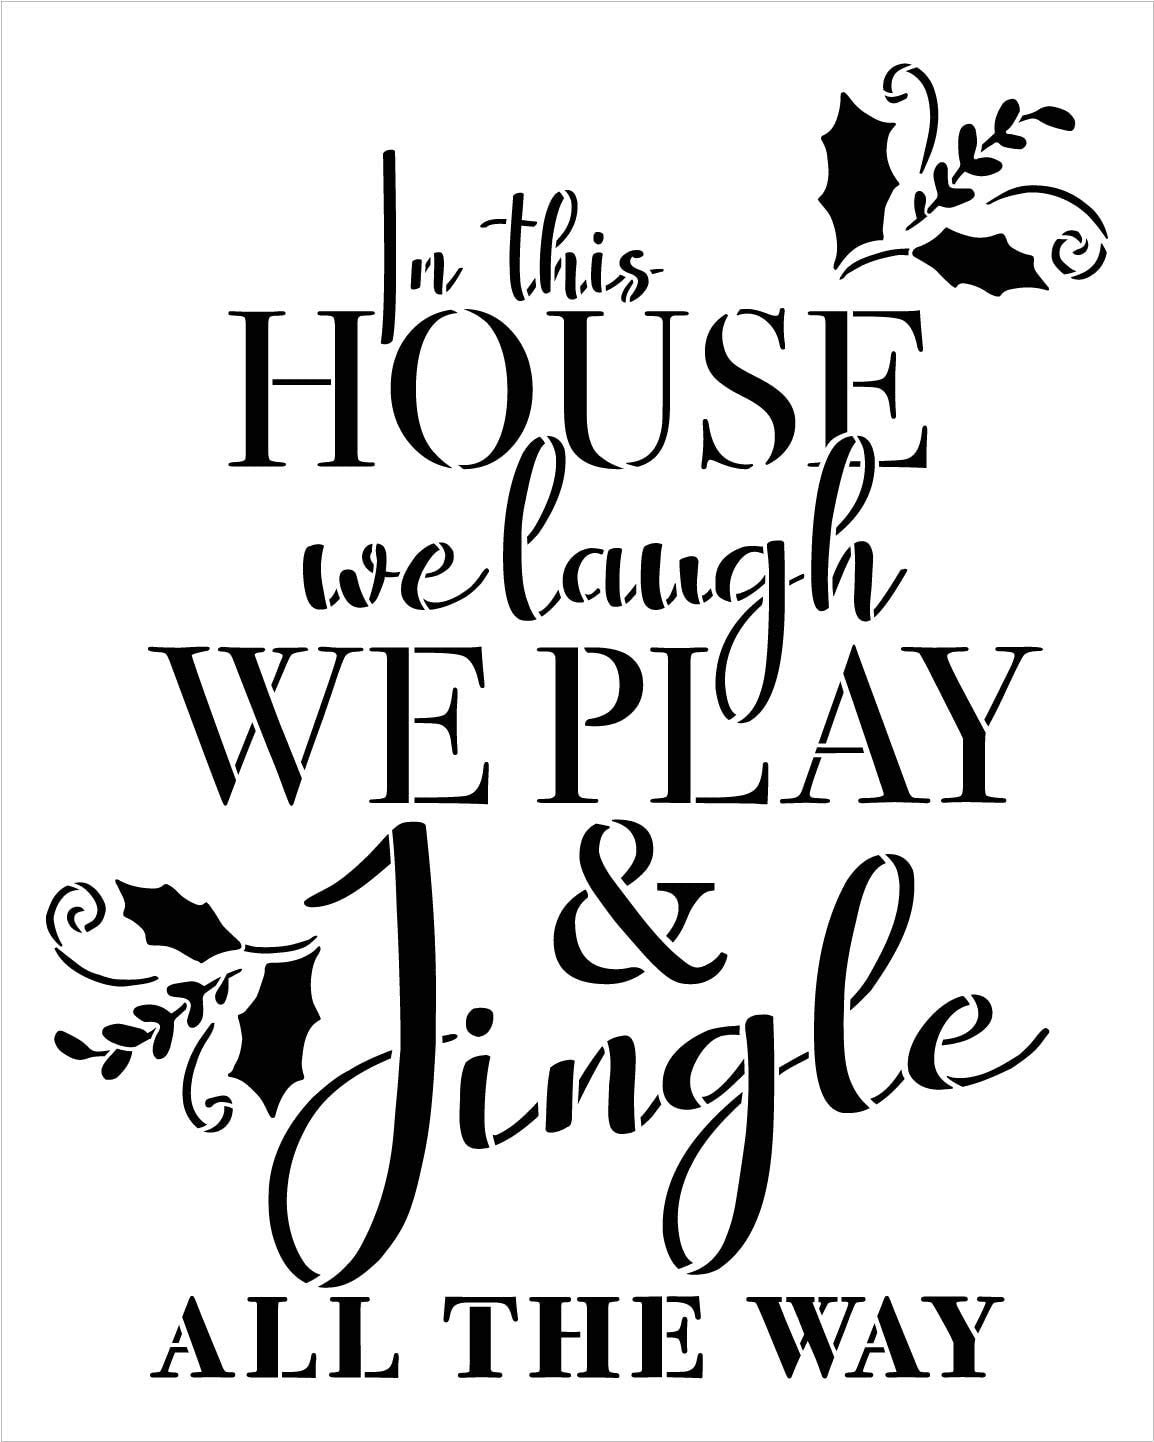 This House Laugh Play Jingle All The Way Stencil by StudioR12   DIY Christmas Home Decor   Craft Paint Wood Sign   Reusable Mylar Template Select Size